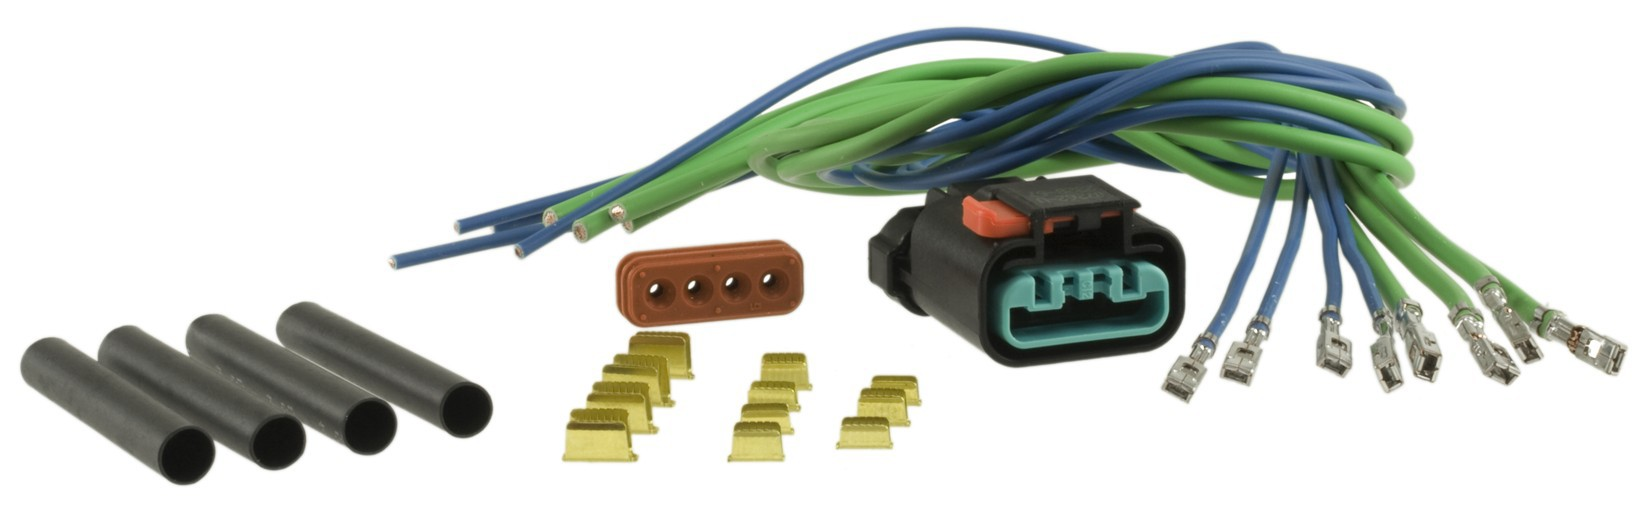 AIRTEX ENG MGMT SYSTEMS(DELETE V24A01R1) - Evaporative Emissions System Leak Detection Pump Connector - AEM 1P1493